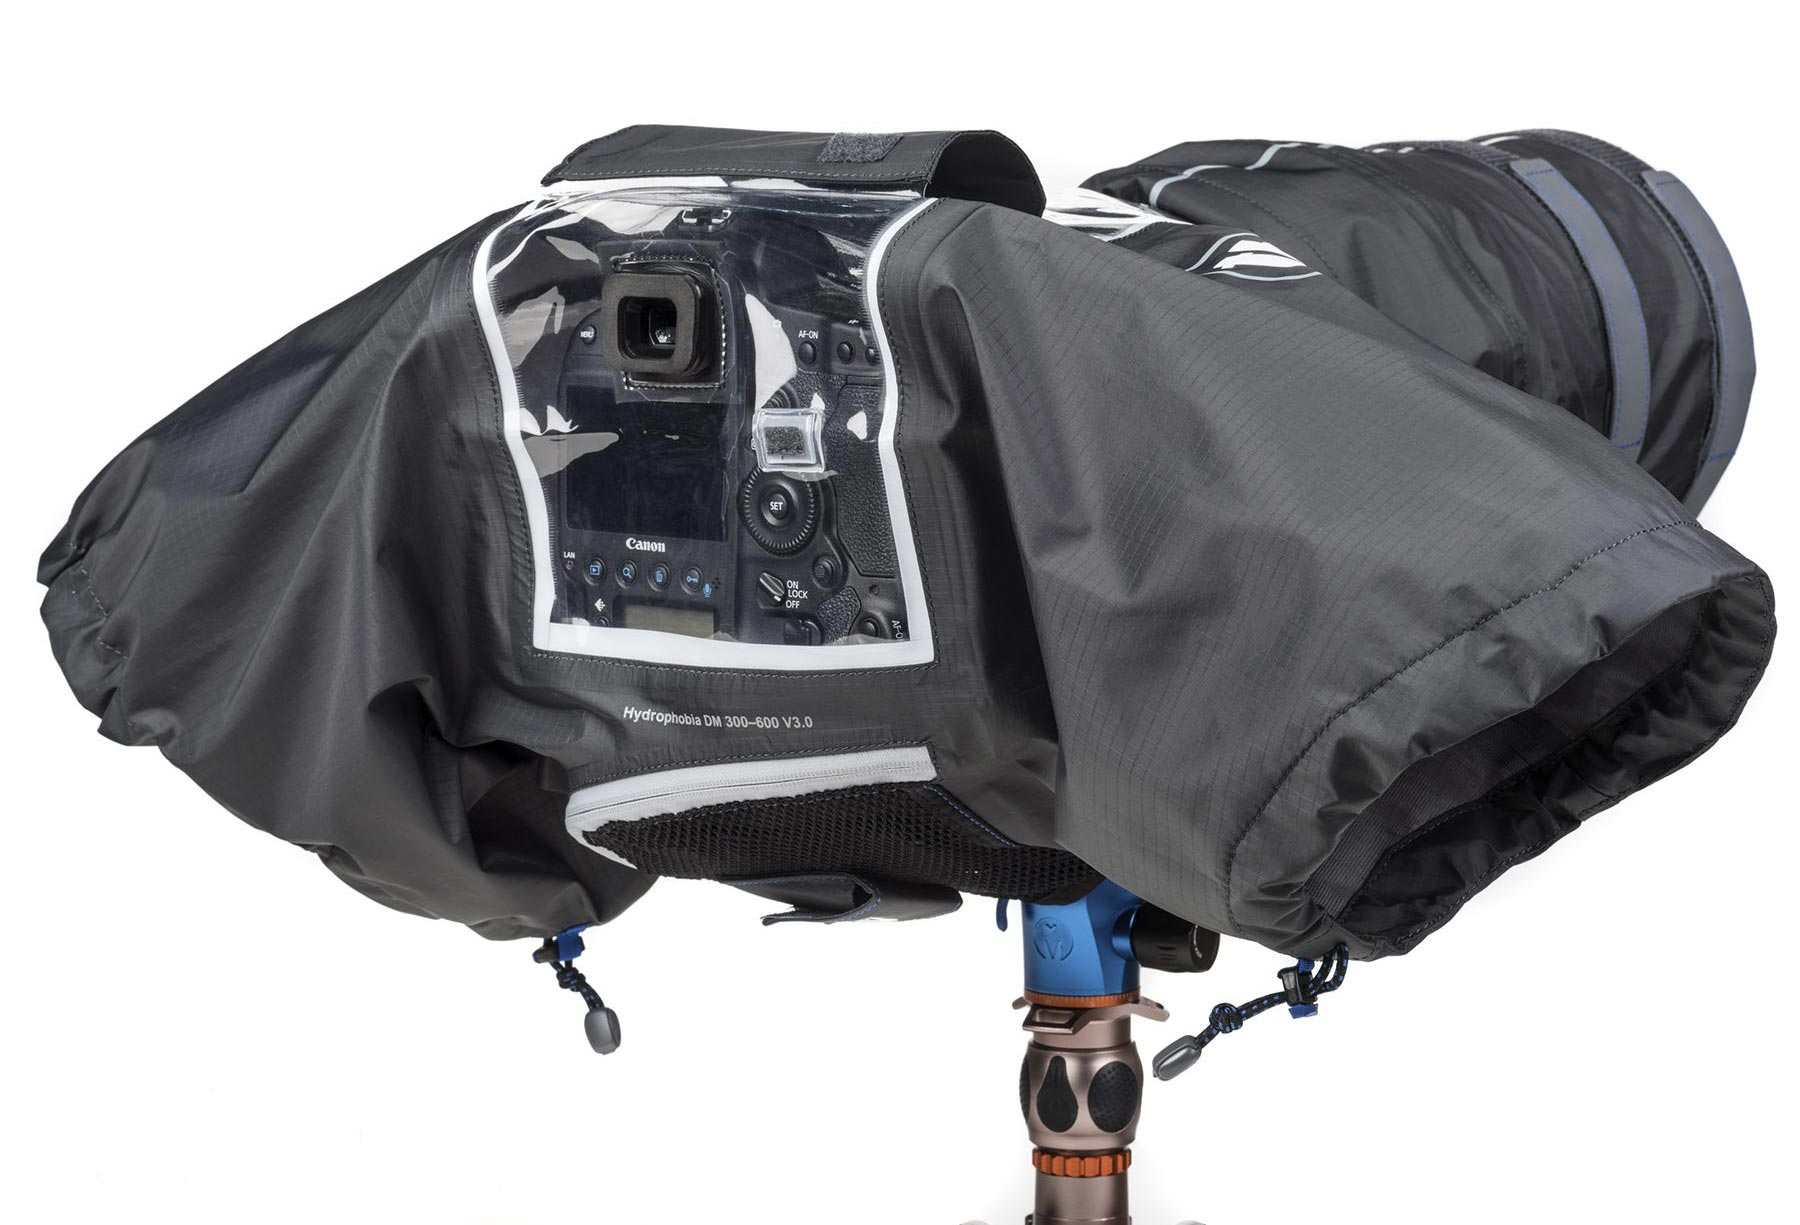 5 Tips To Protect Your Camera In Cold Weather Drybox Mirrorless Canon Eos M10 3 Rain Covers